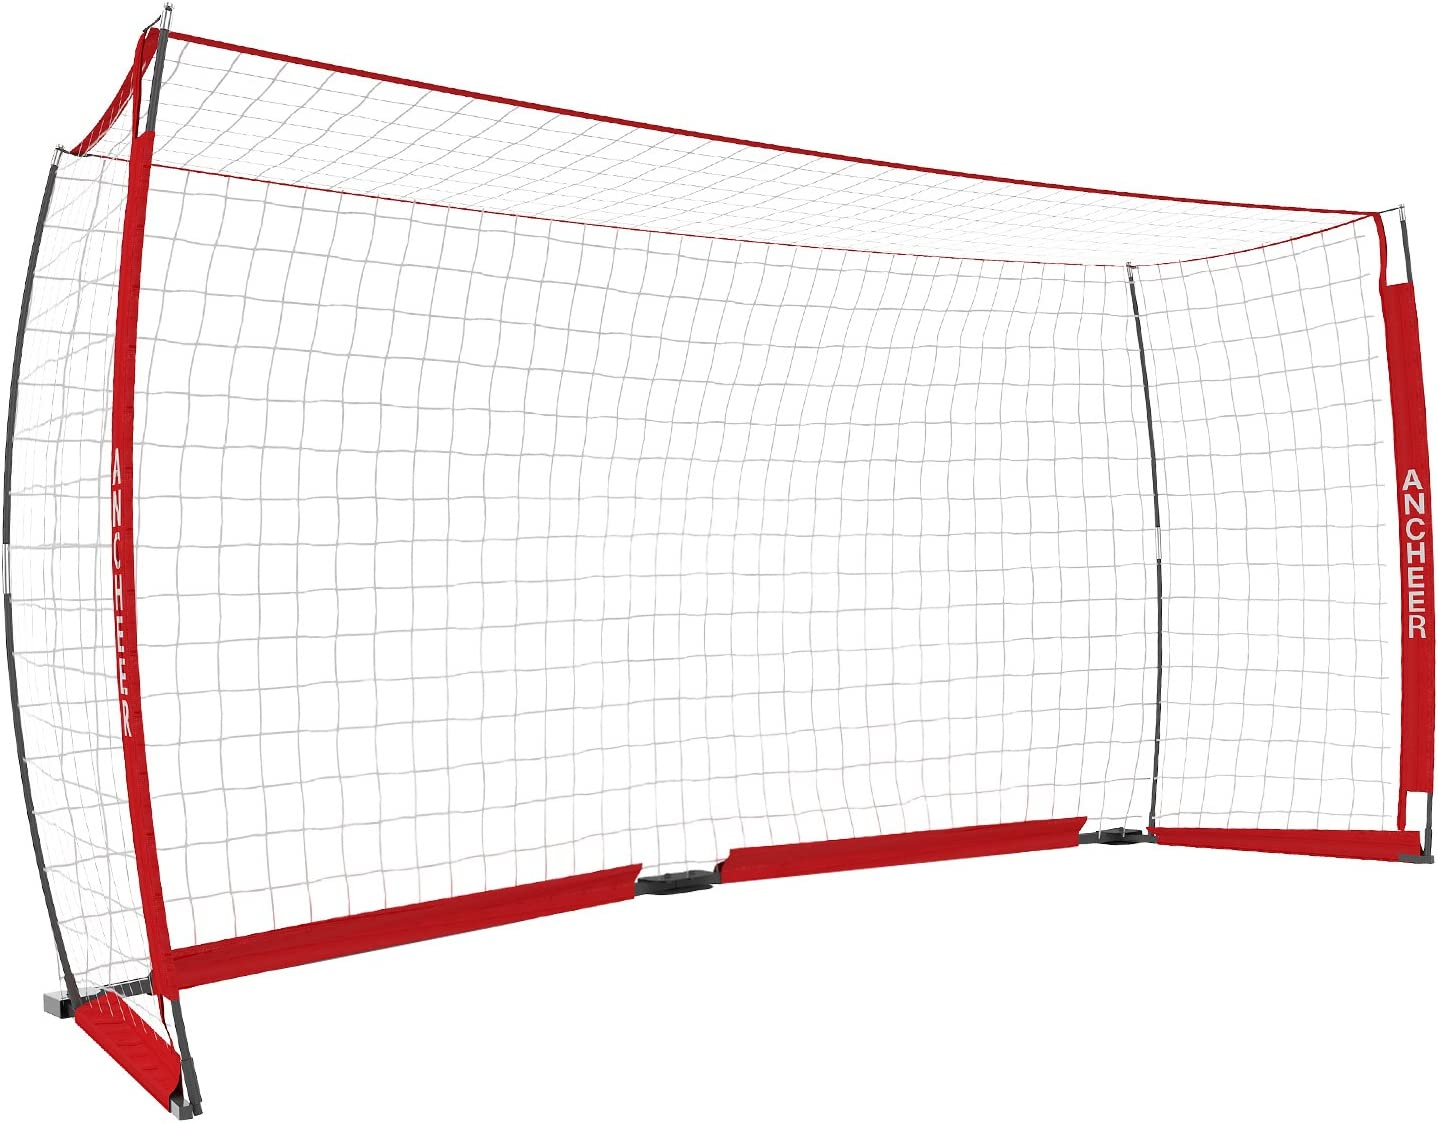 ANCHEER Portable Soccer Goal Net for Kids/Adults - Quick Set-Up Soccer Net for Backyard(12 x 6 ft) : Sports & Outdoors